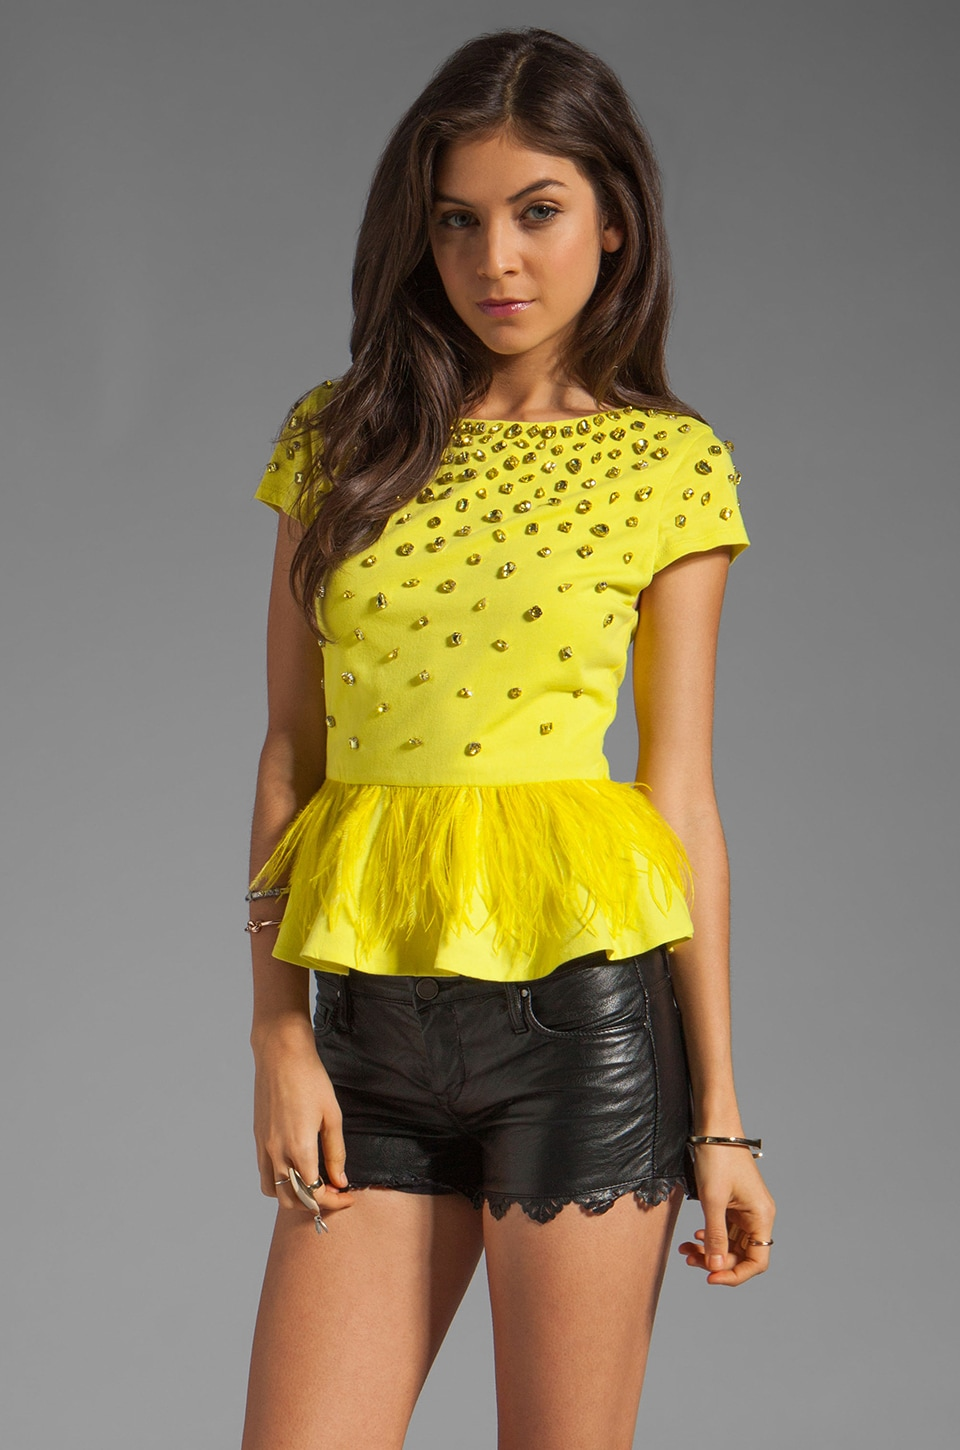 Alice + Olivia Blossom Embellished Peplum Top in Chartreuse Green